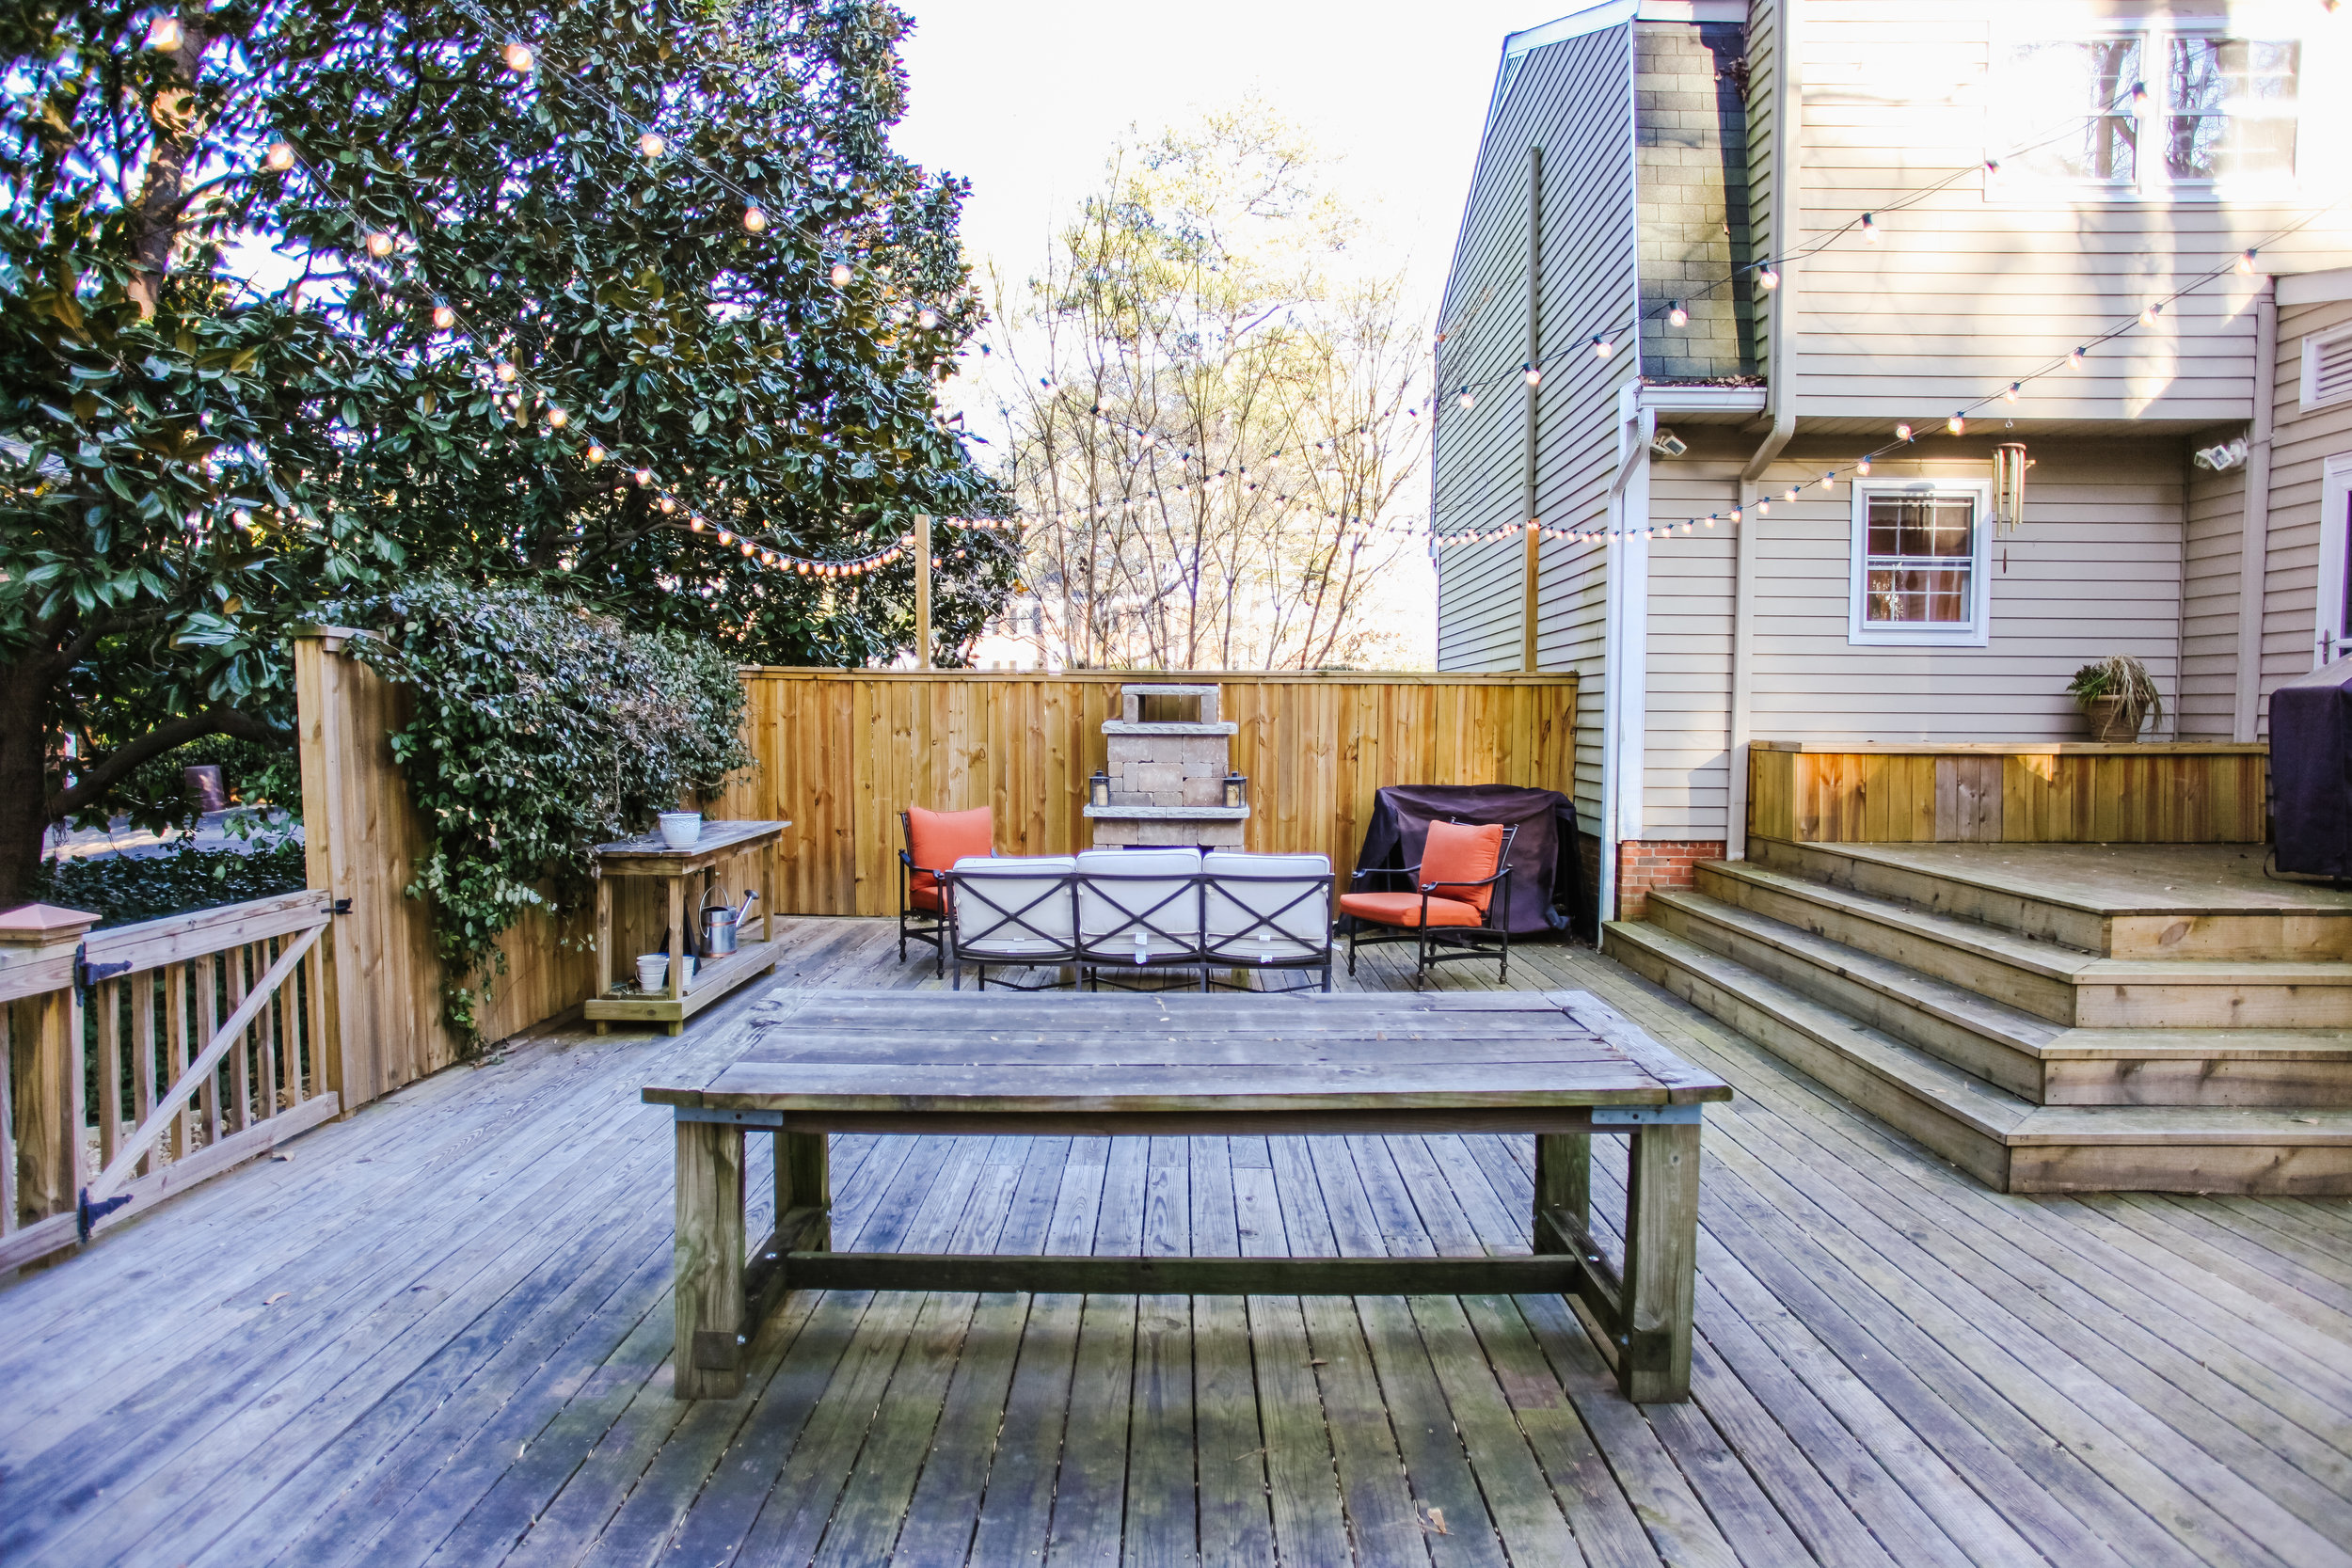 wingard-real-estate-sandy-springs-dream-home-backyard-goals-atlanta-buckhead-78.jpg